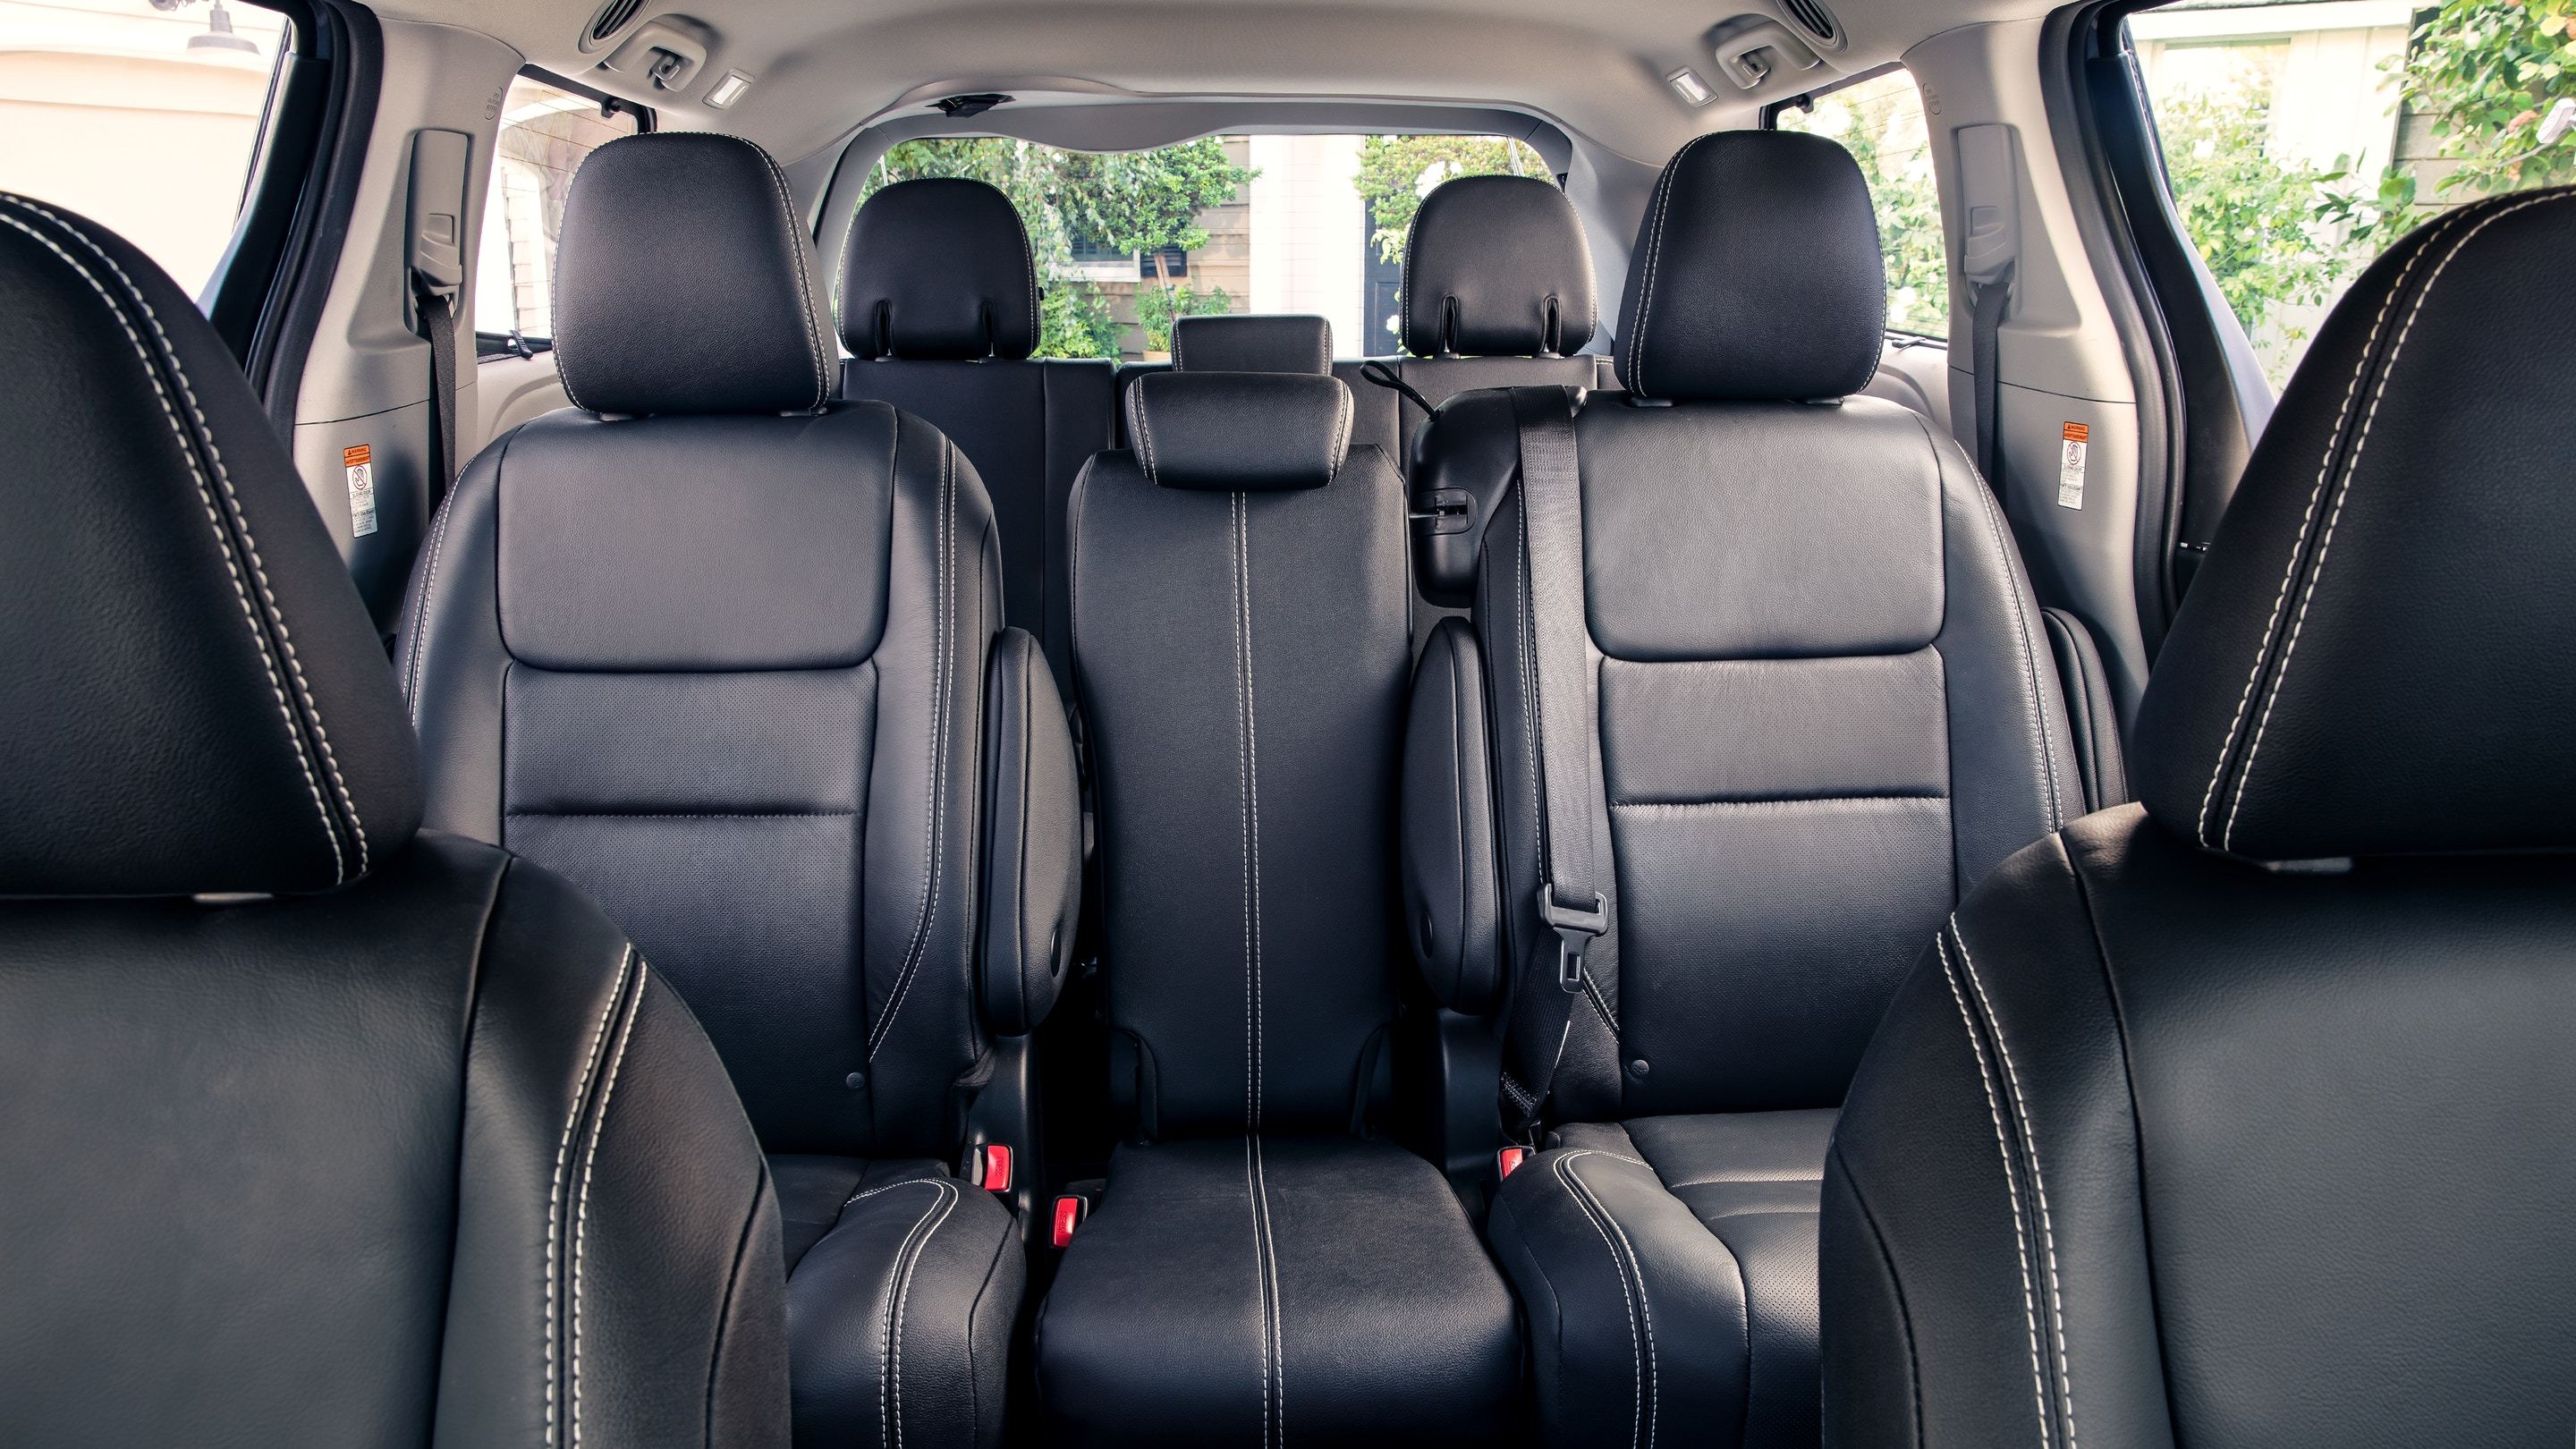 2019 Toyota Sienna Interior Seating